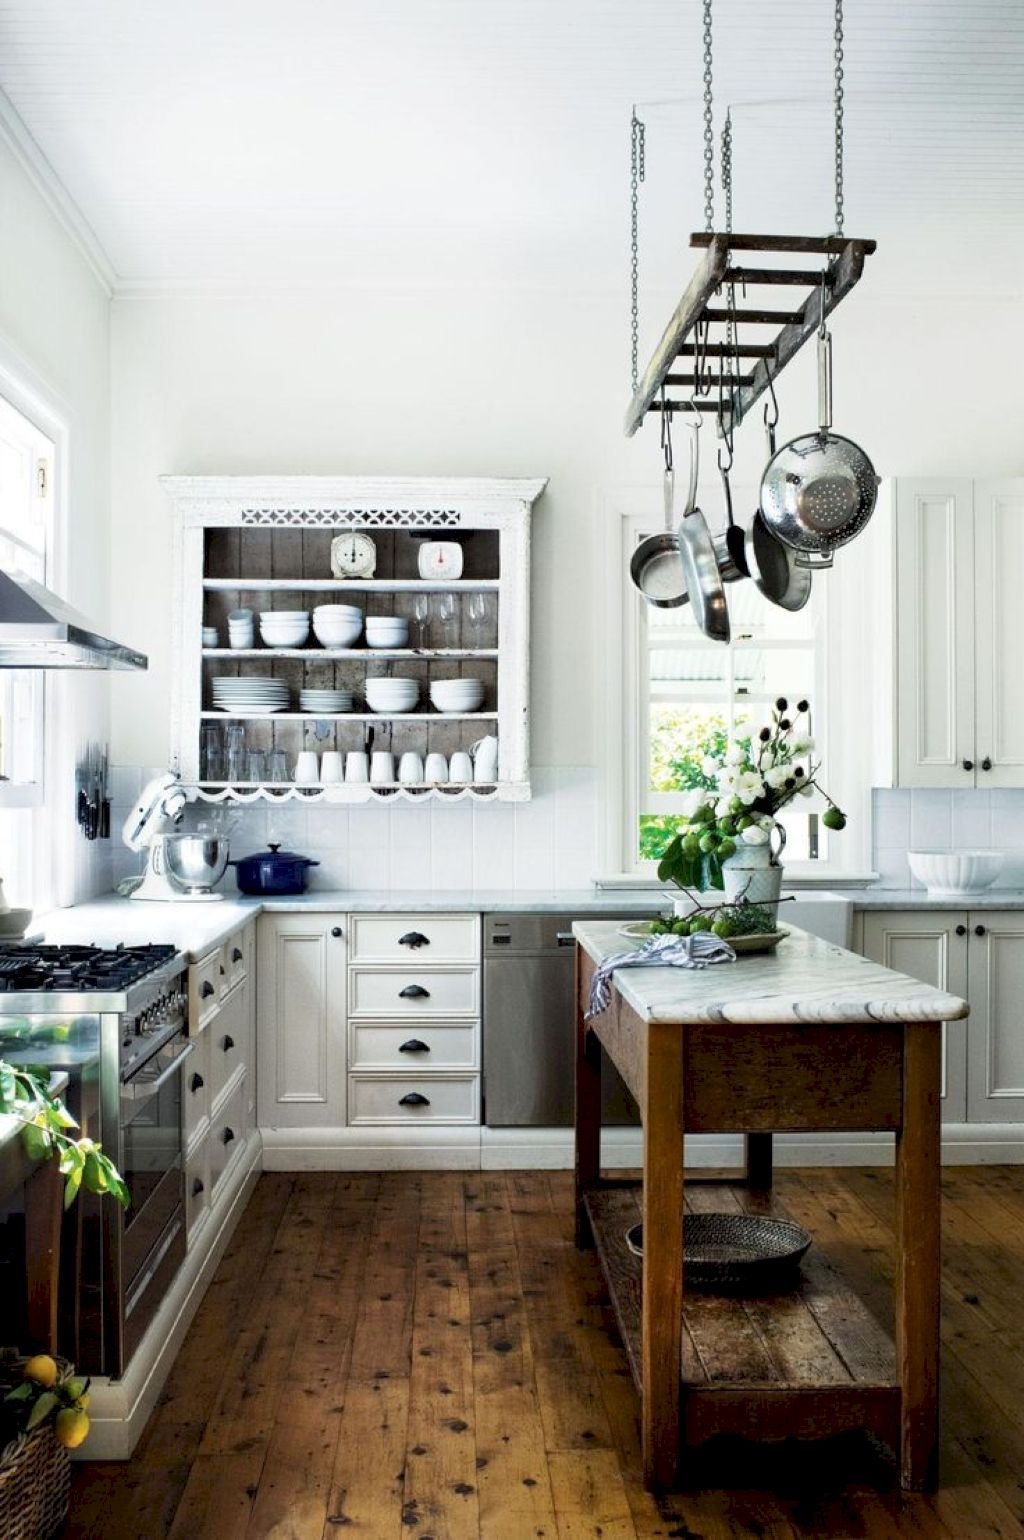 45 Best Farmhouse Kitchen Island Decor Ideas On a Budget | Kitchen ...